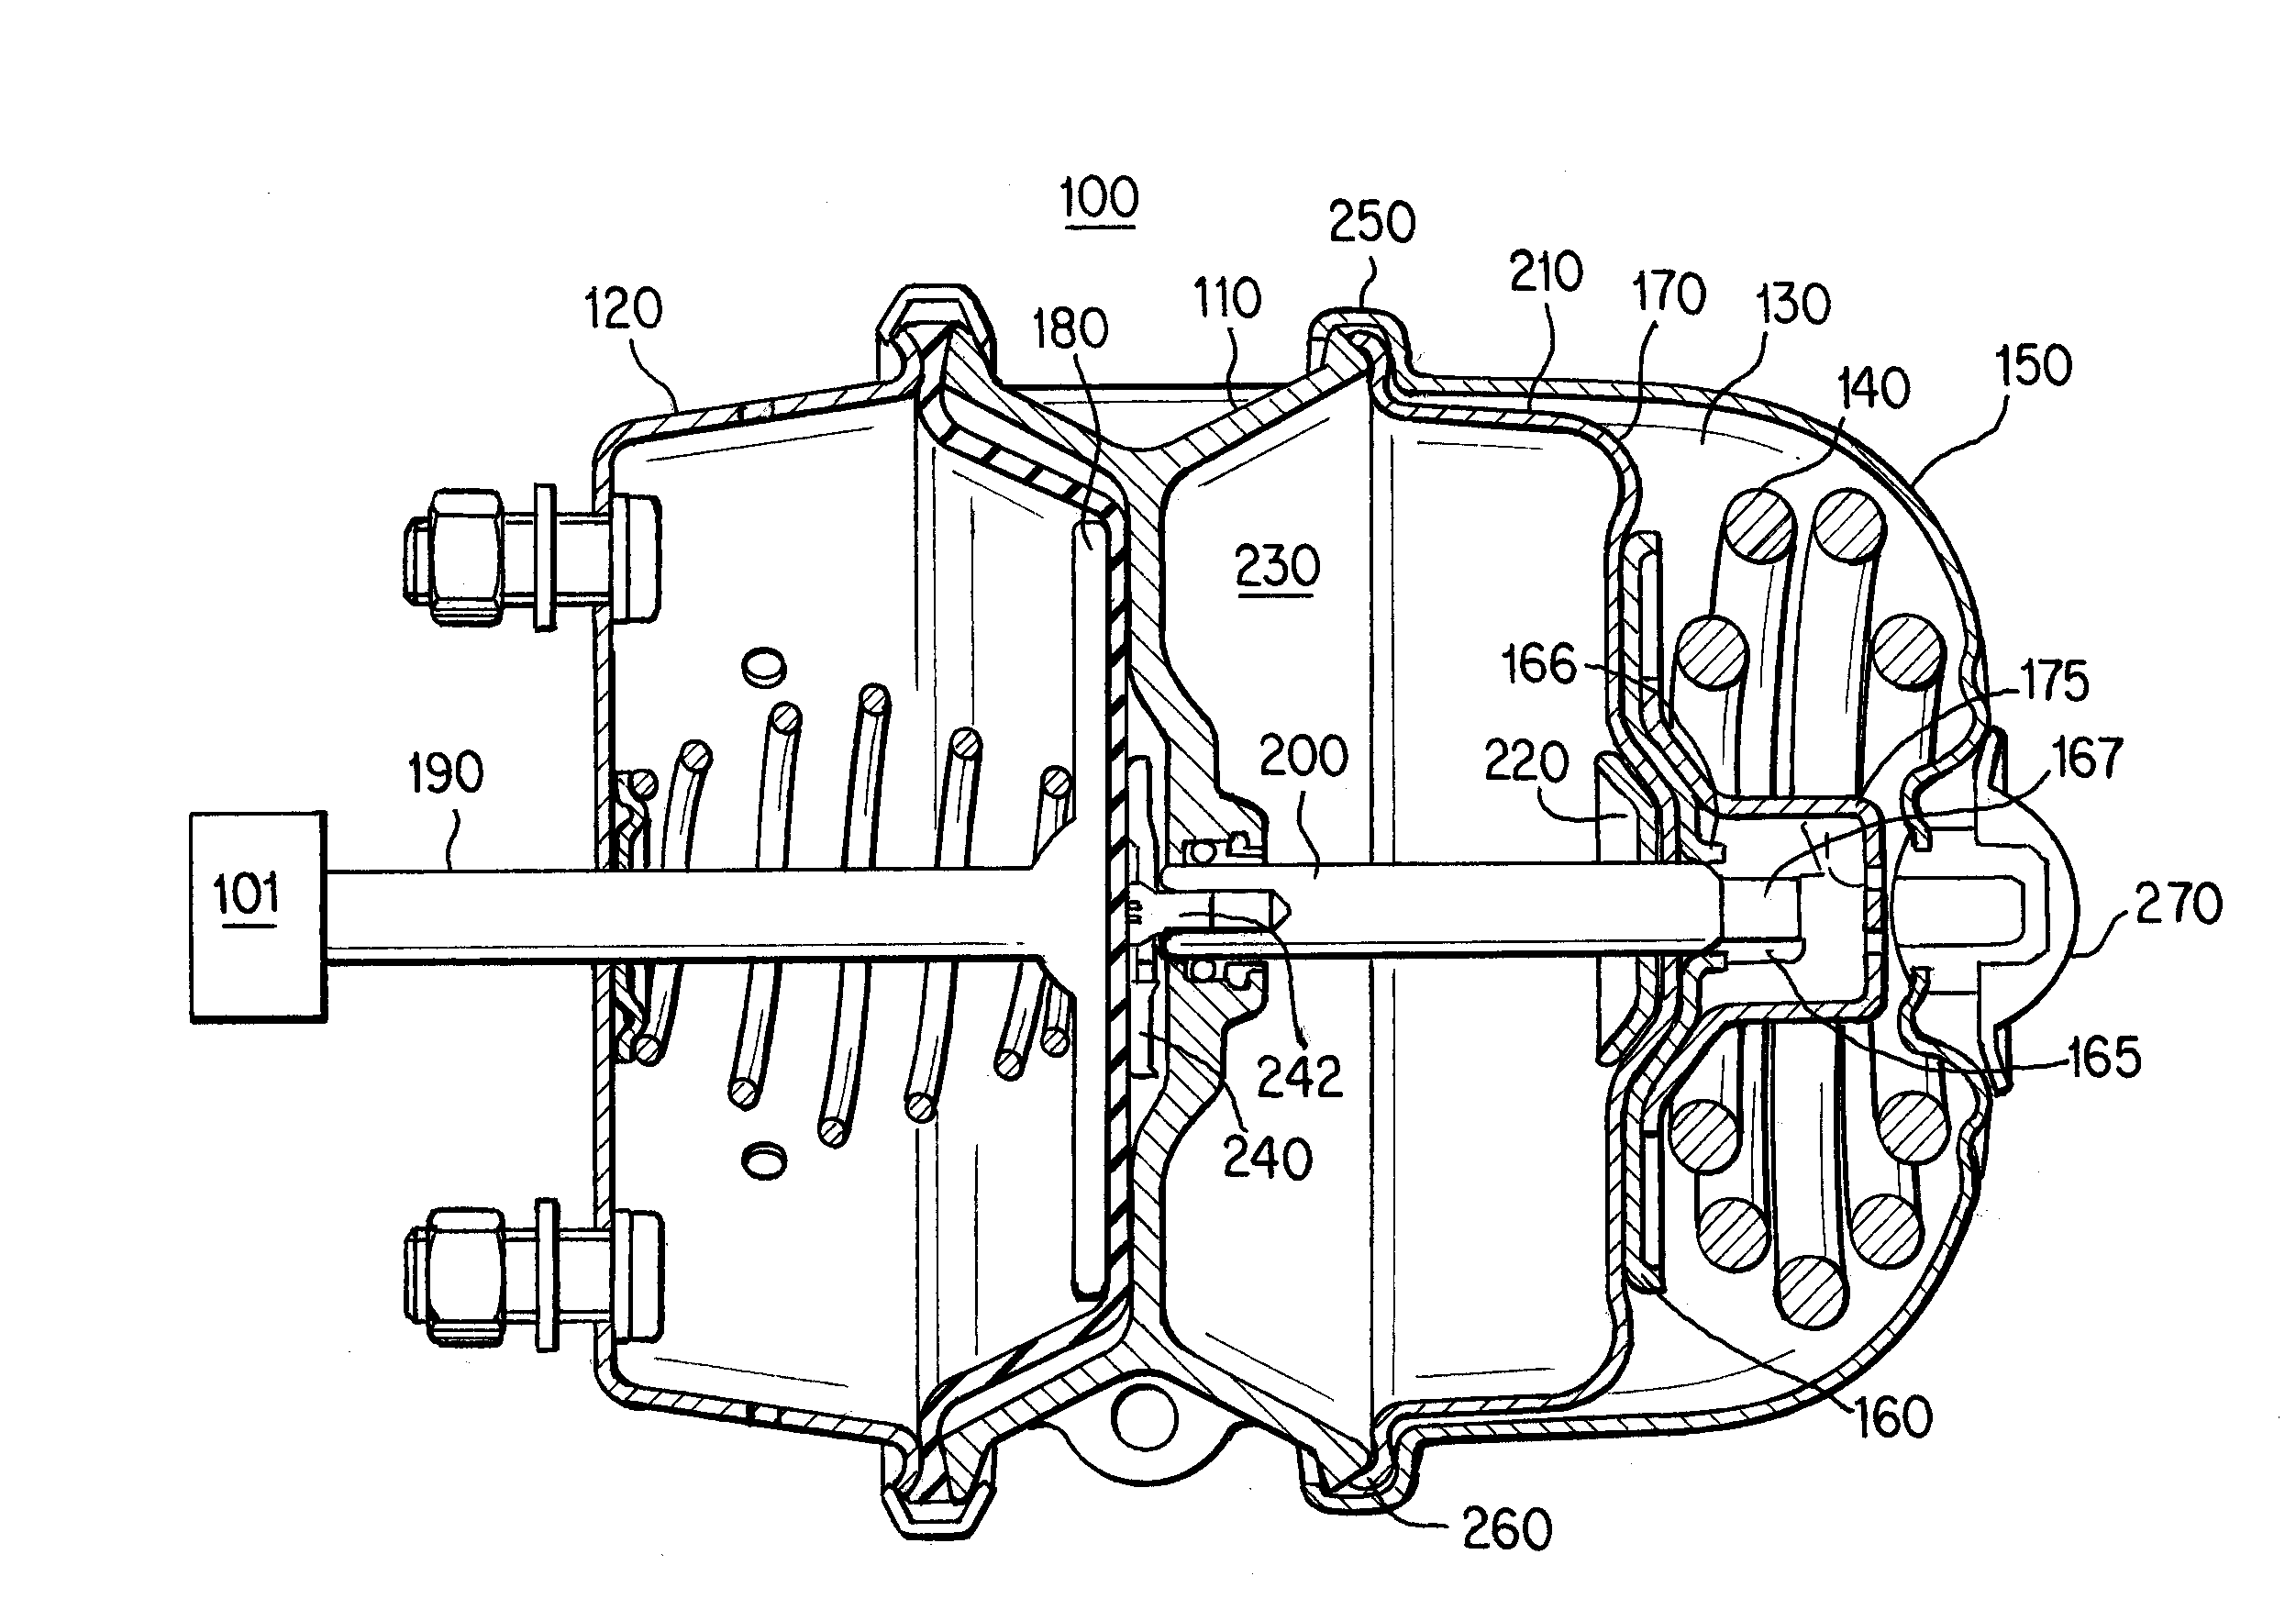 Brevet US20130075211 - Parking Brake Piston for a Parking